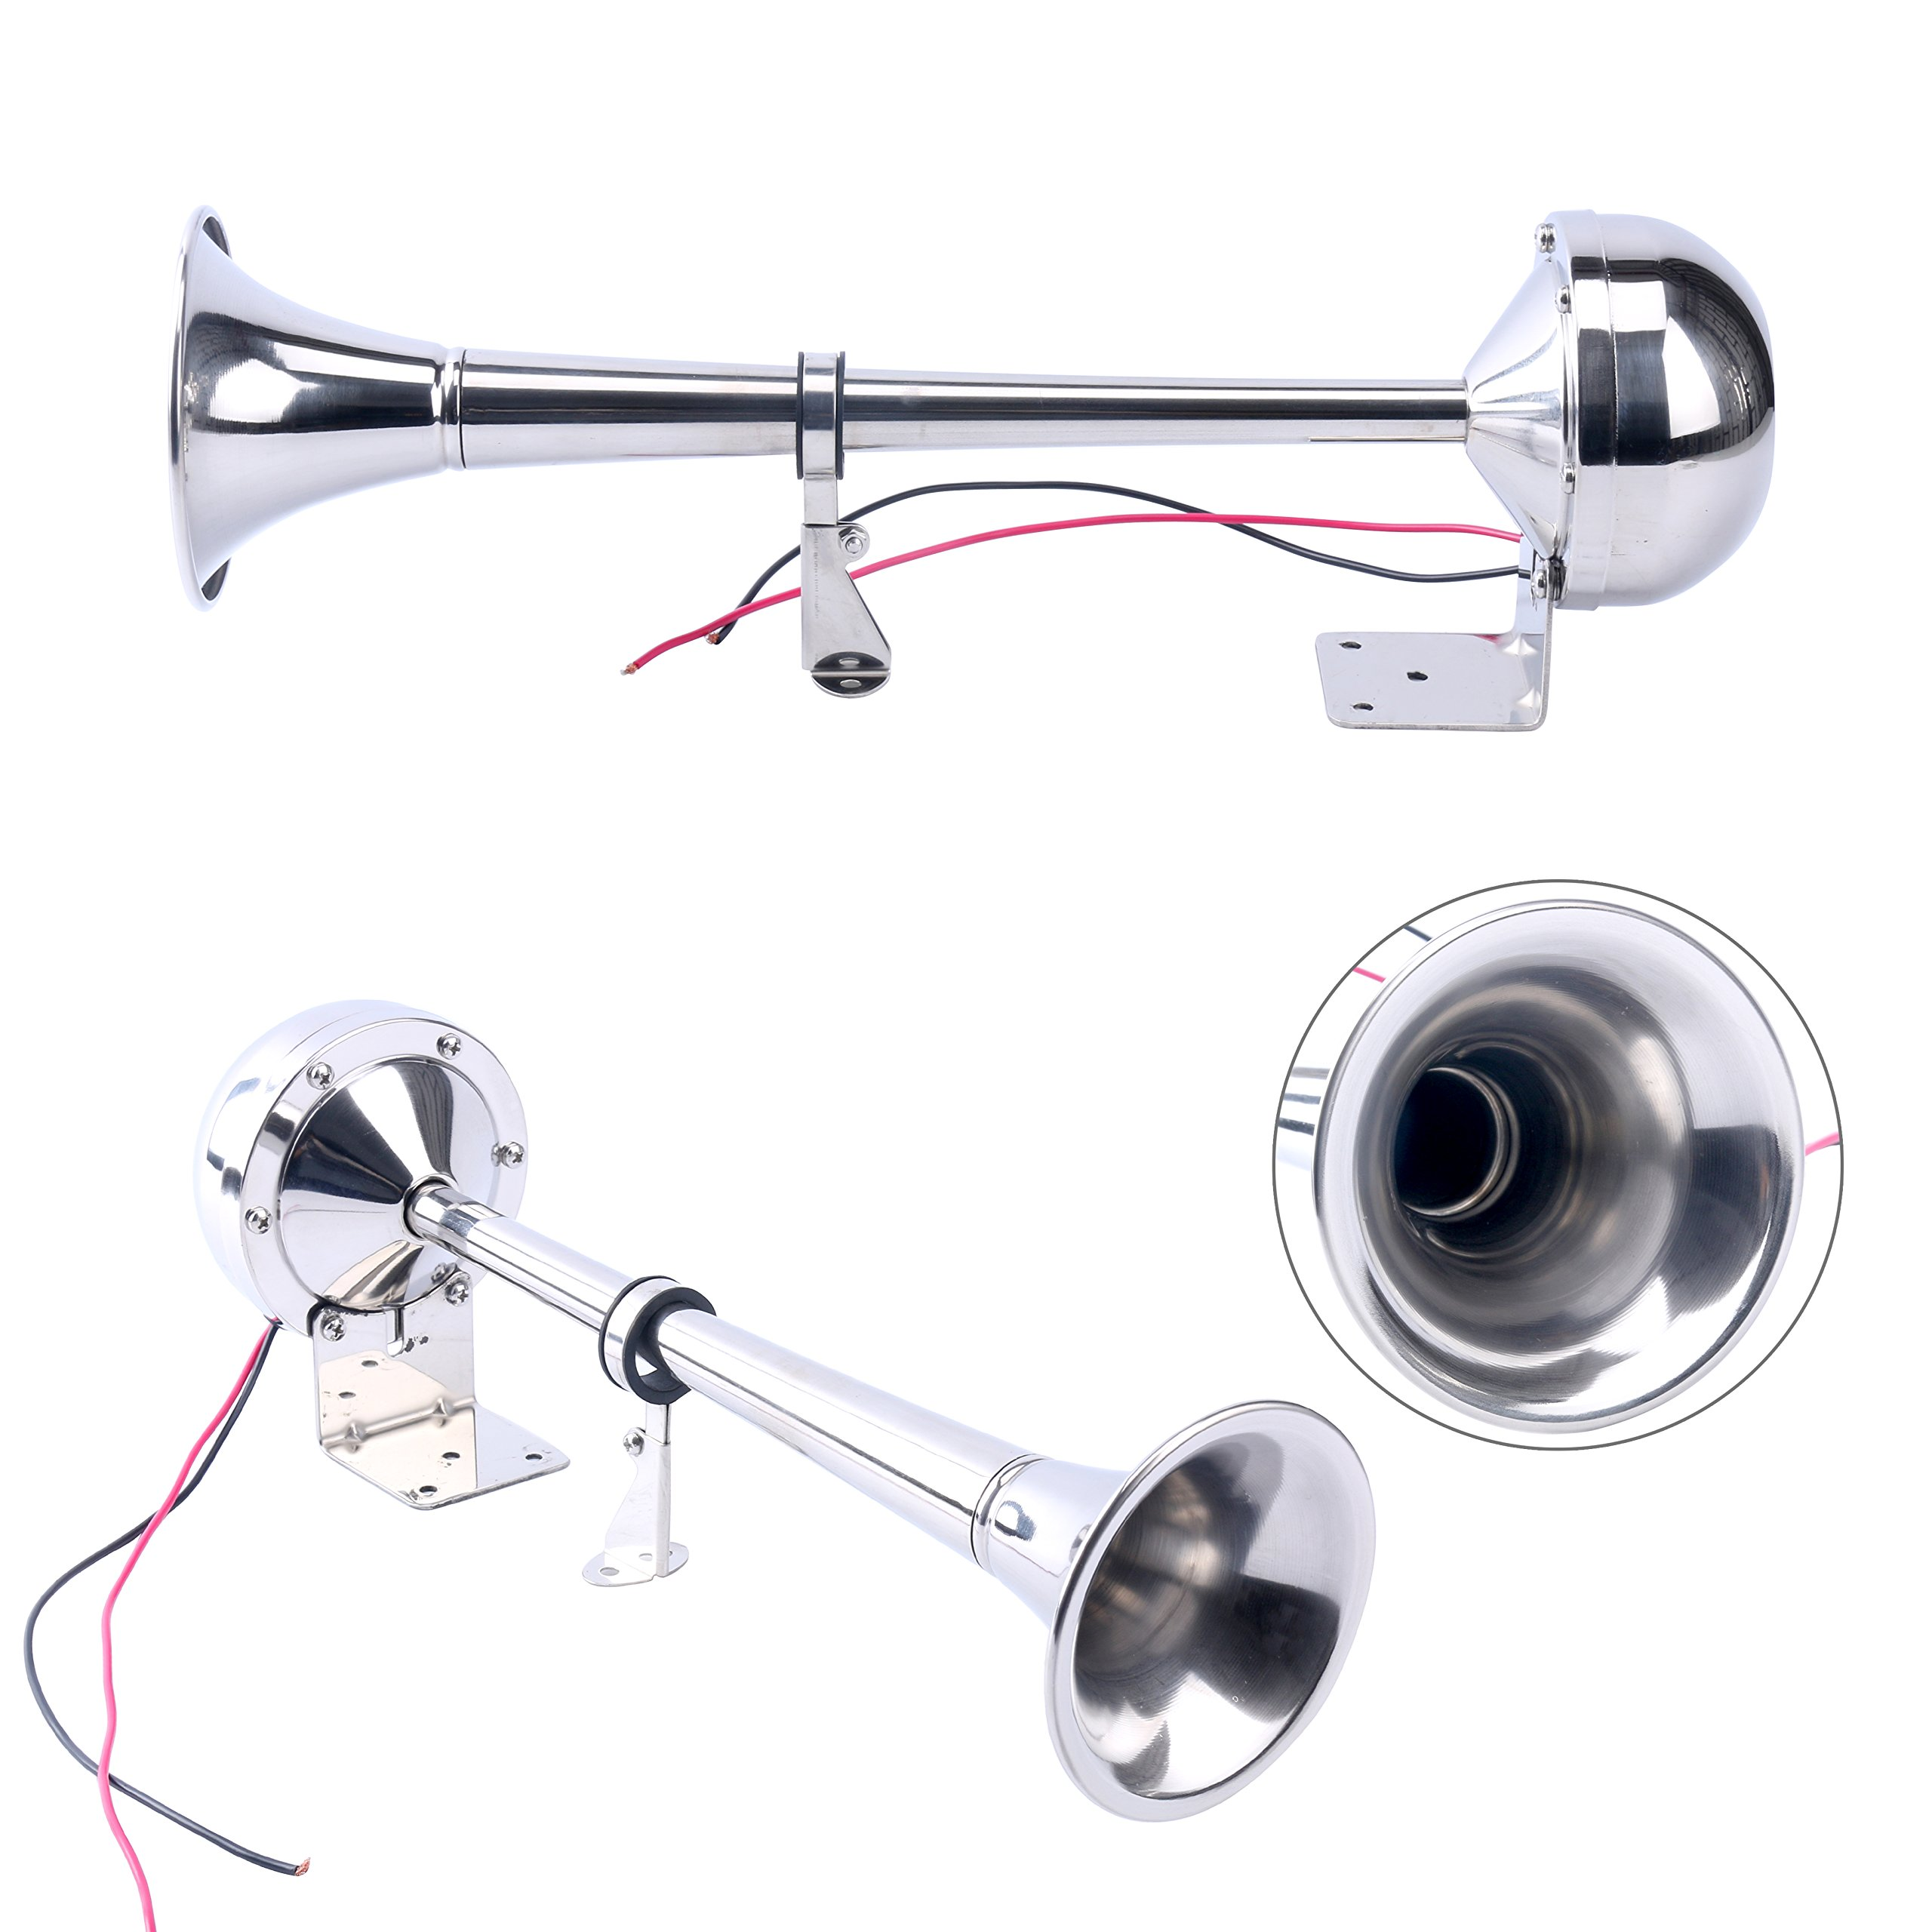 Amarine-made 12v Marine Boat Stainless Steel Single Trumpet Horn, Low Tone, 16-1/8''